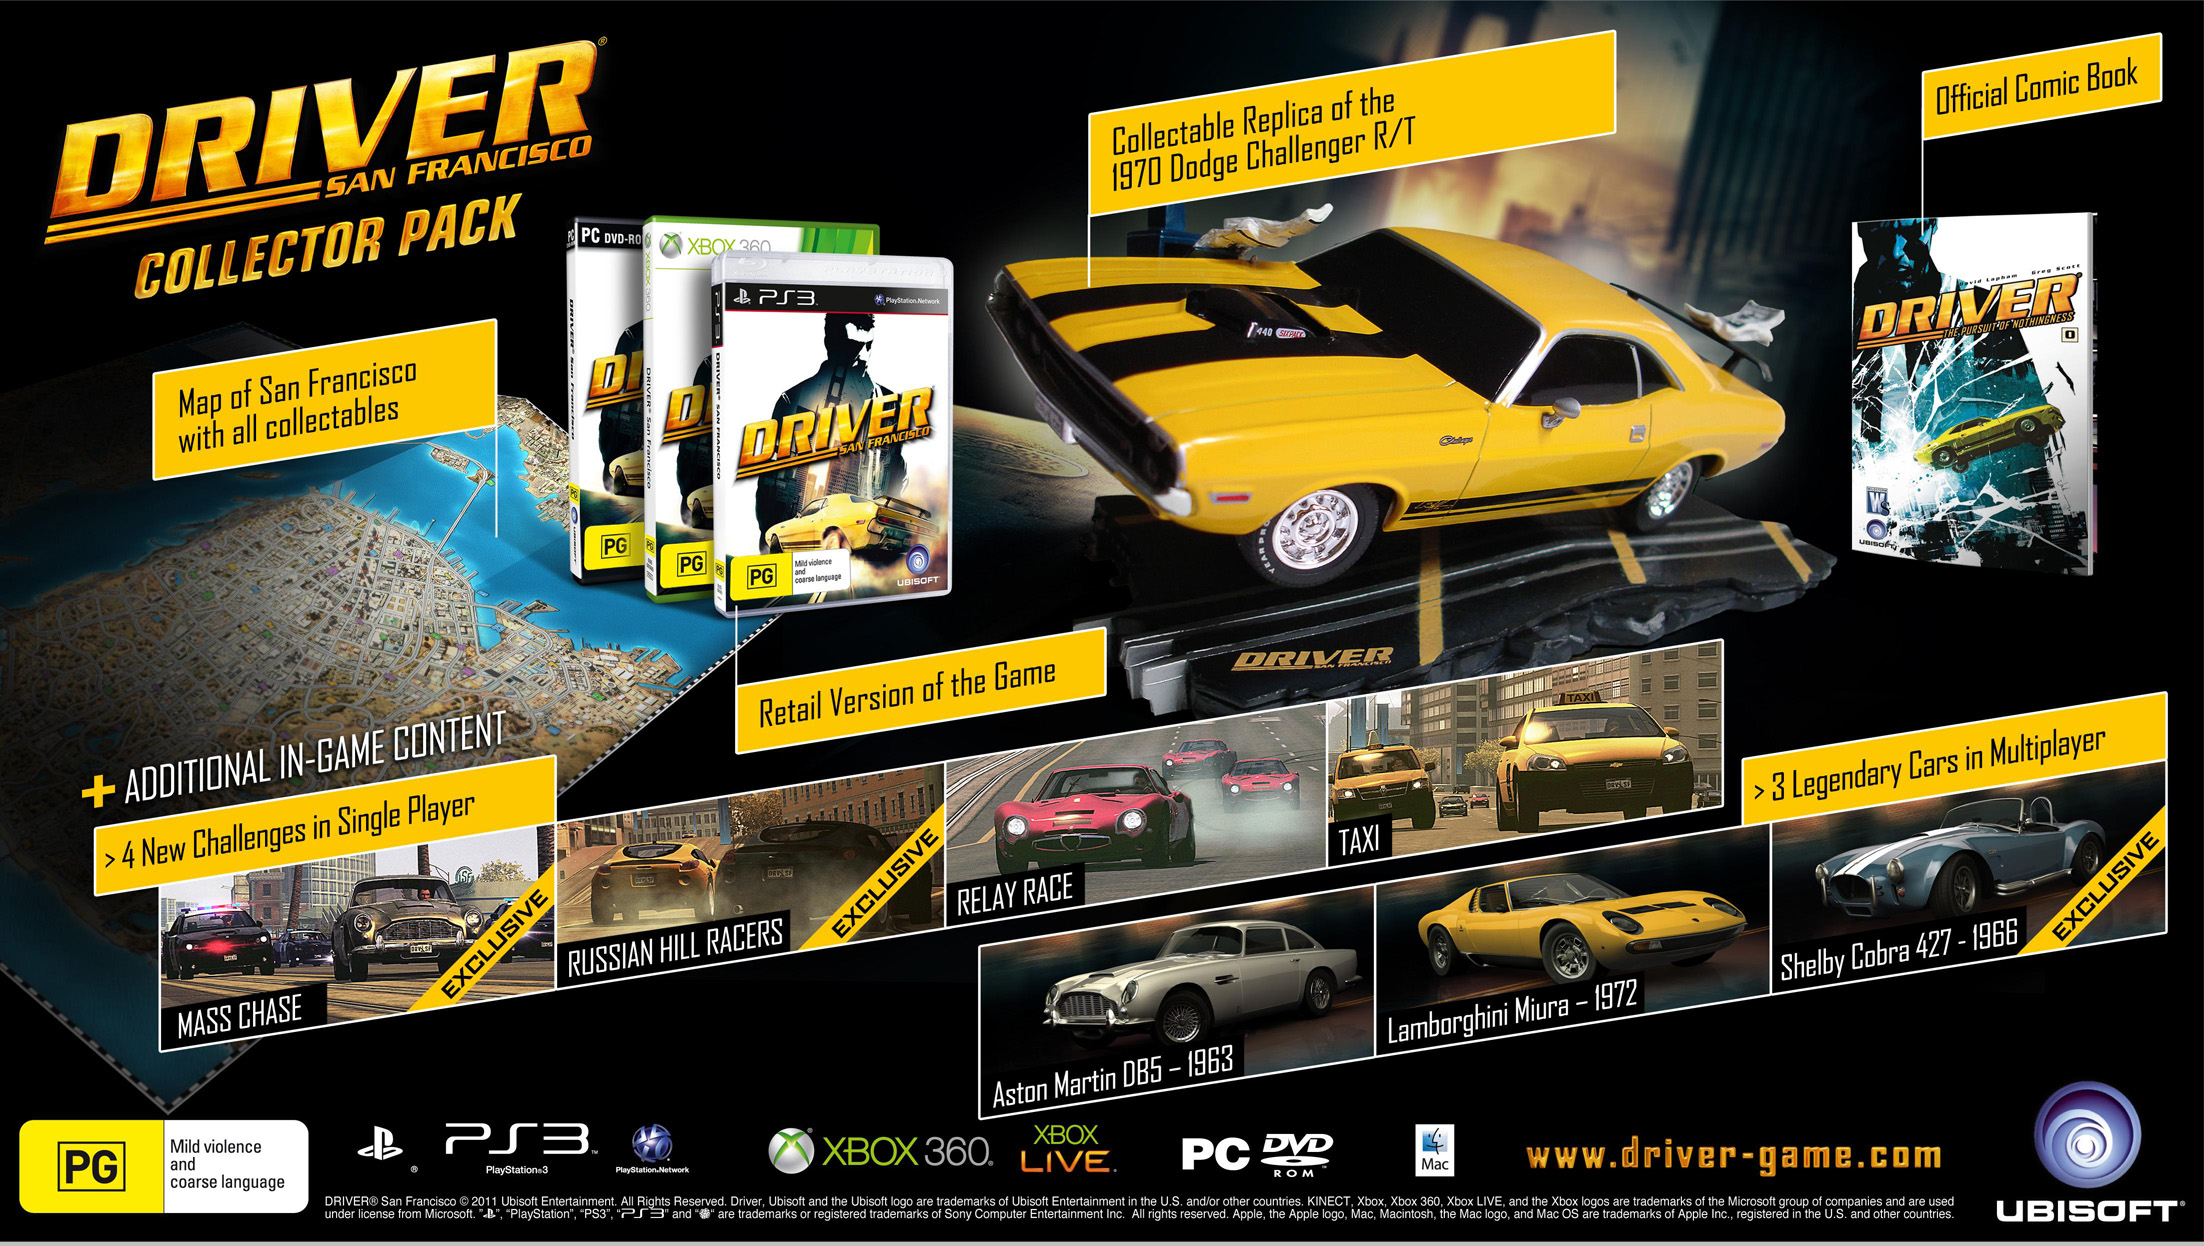 Driver-San-Francisco-Collector-Pack